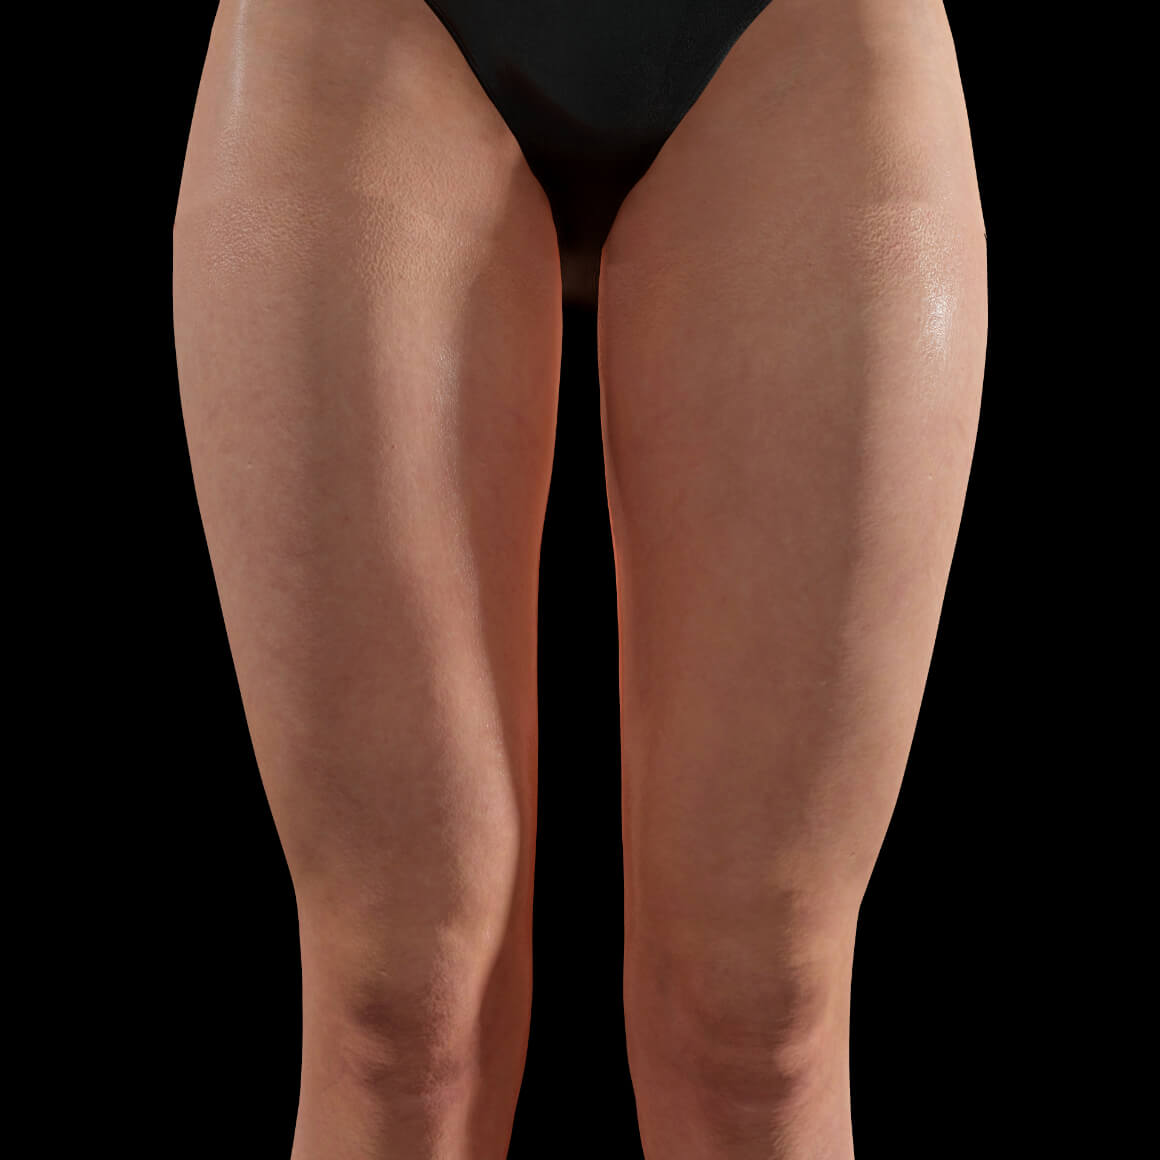 Anterior thighs of a Clinique Chloé female patient after Sculptra injections for body skin tightening